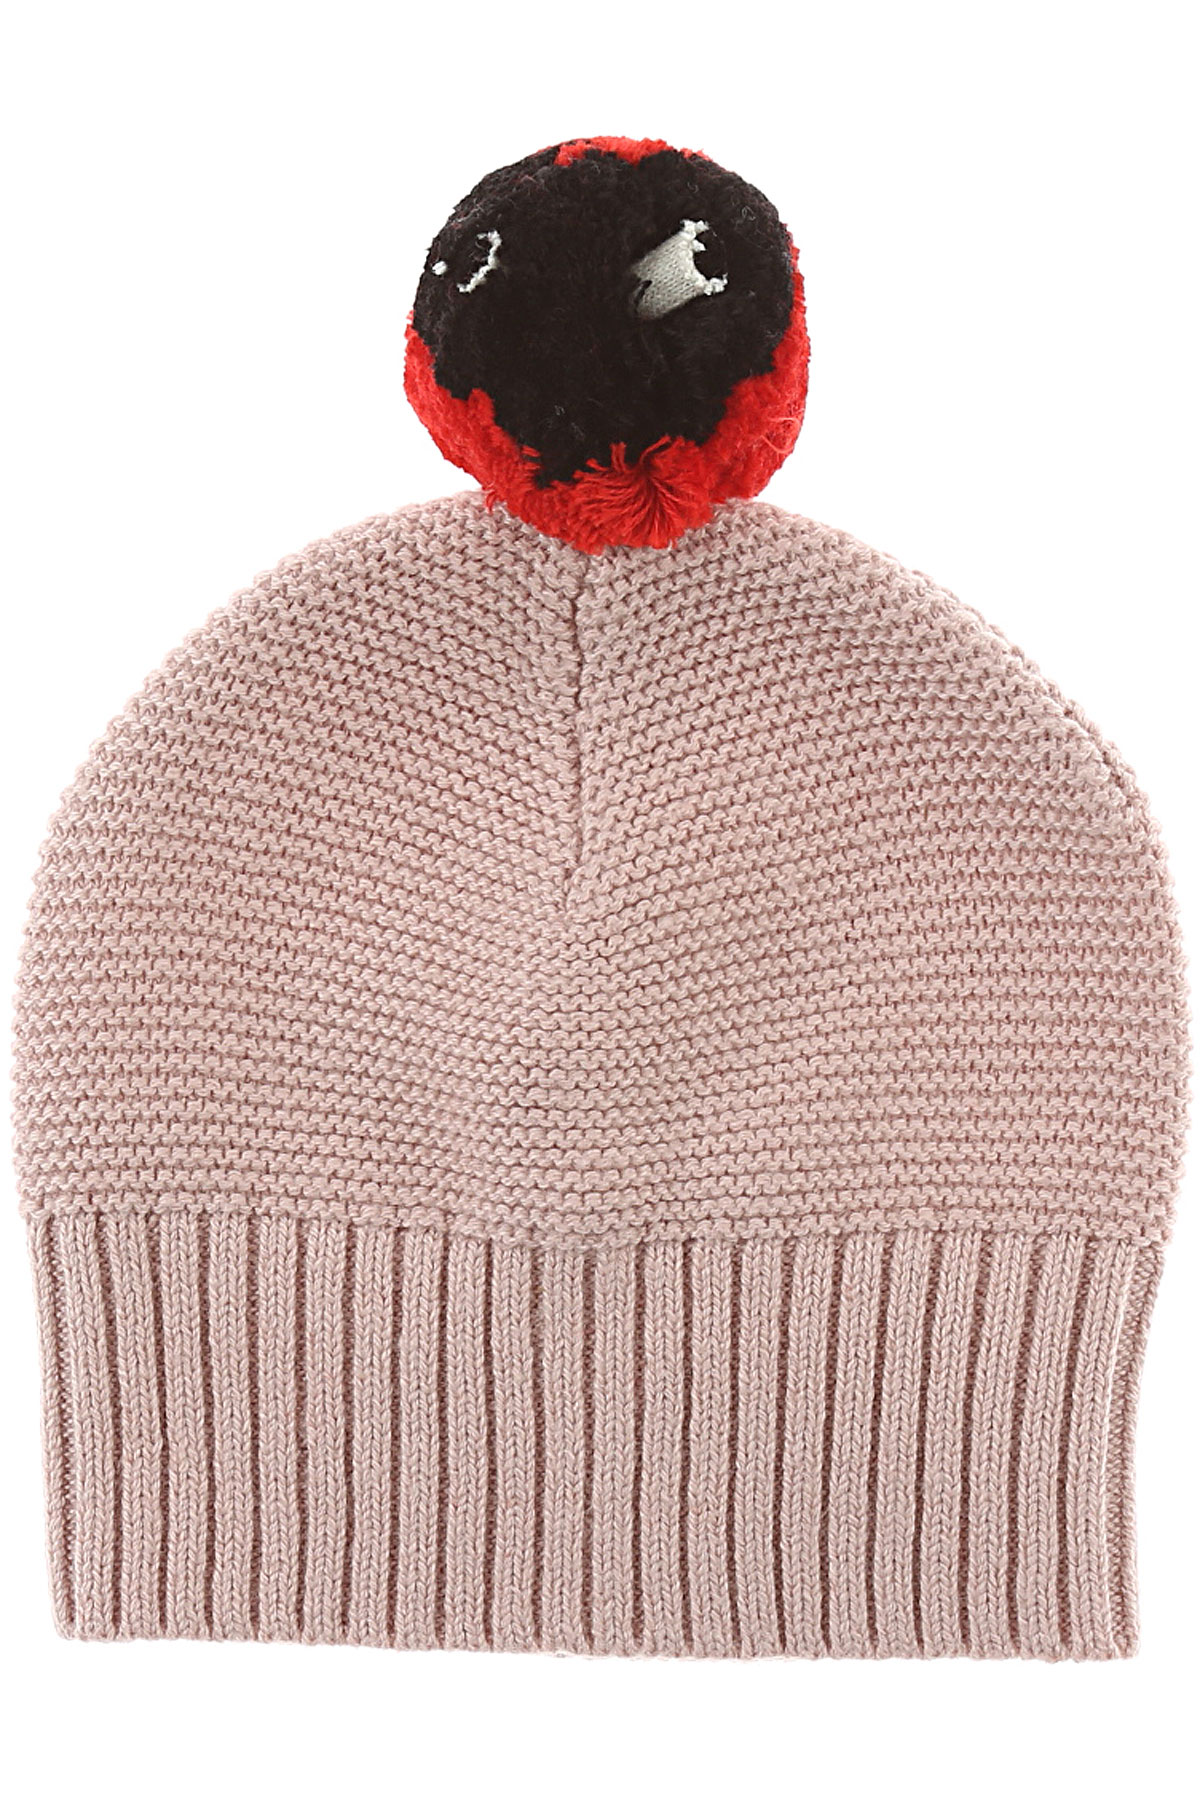 Image of Stella McCartney Baby Hats for Girls, Pink, Cotton, 2017, 6M